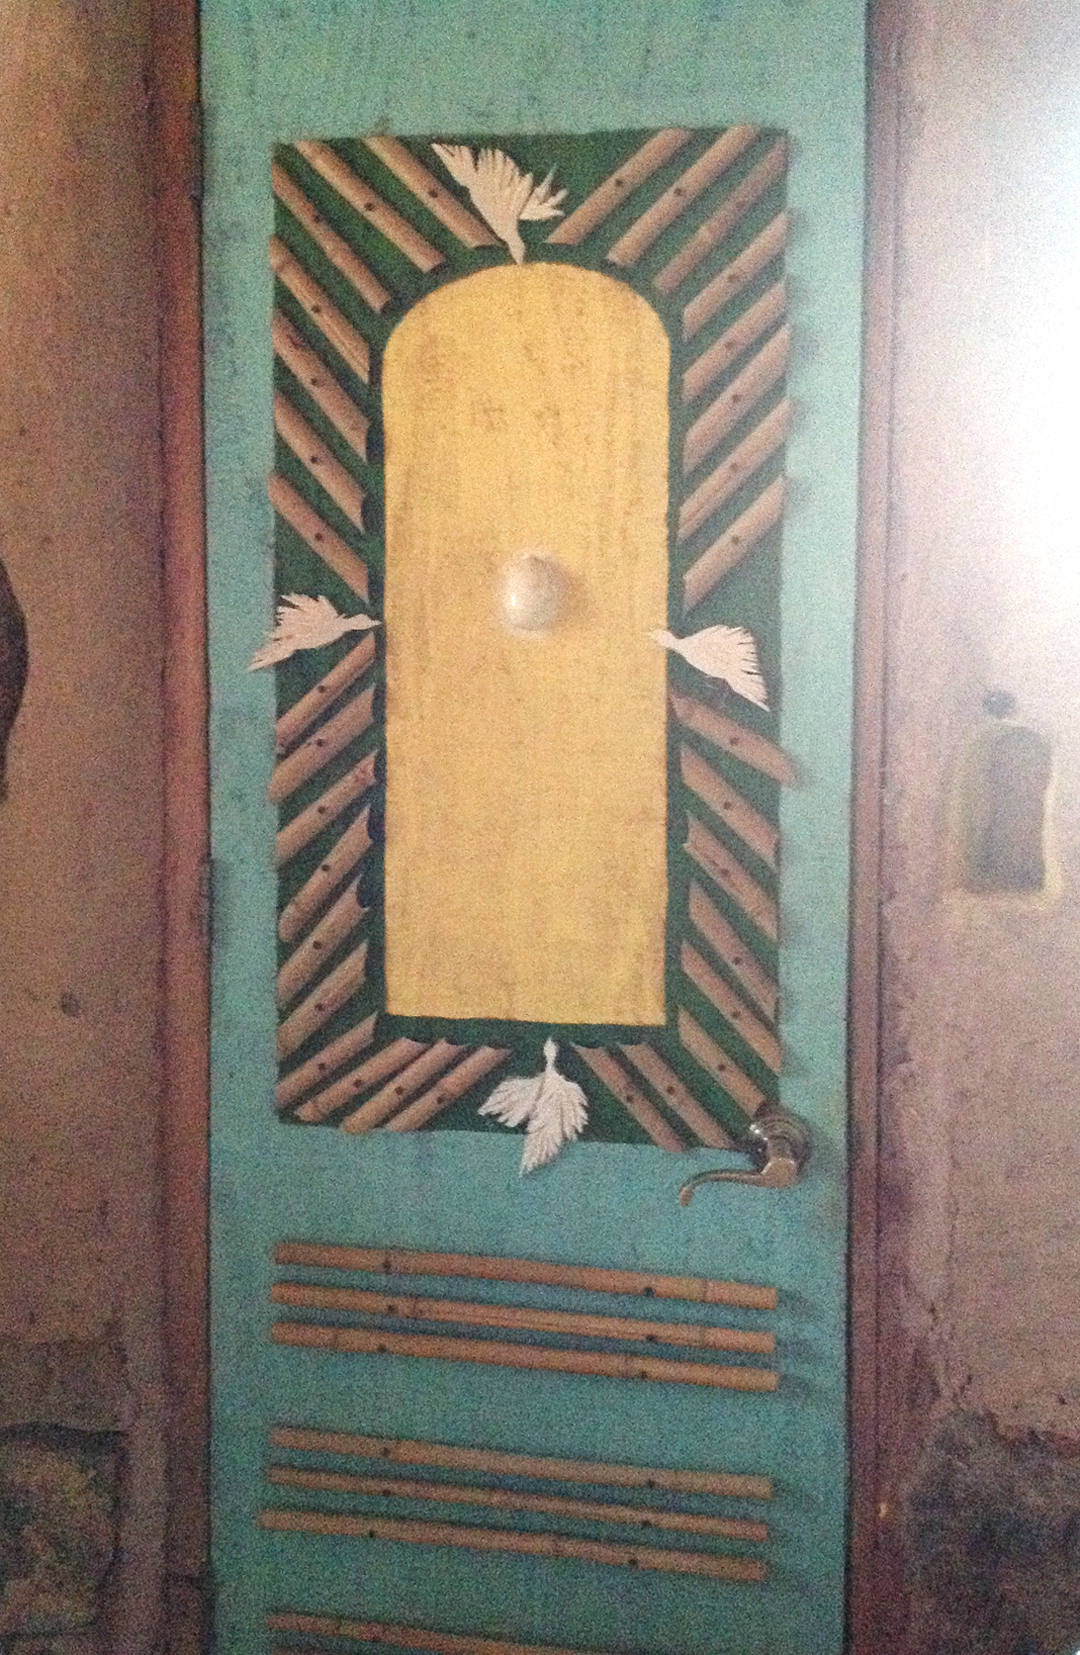 Virgin of Guadalupe door